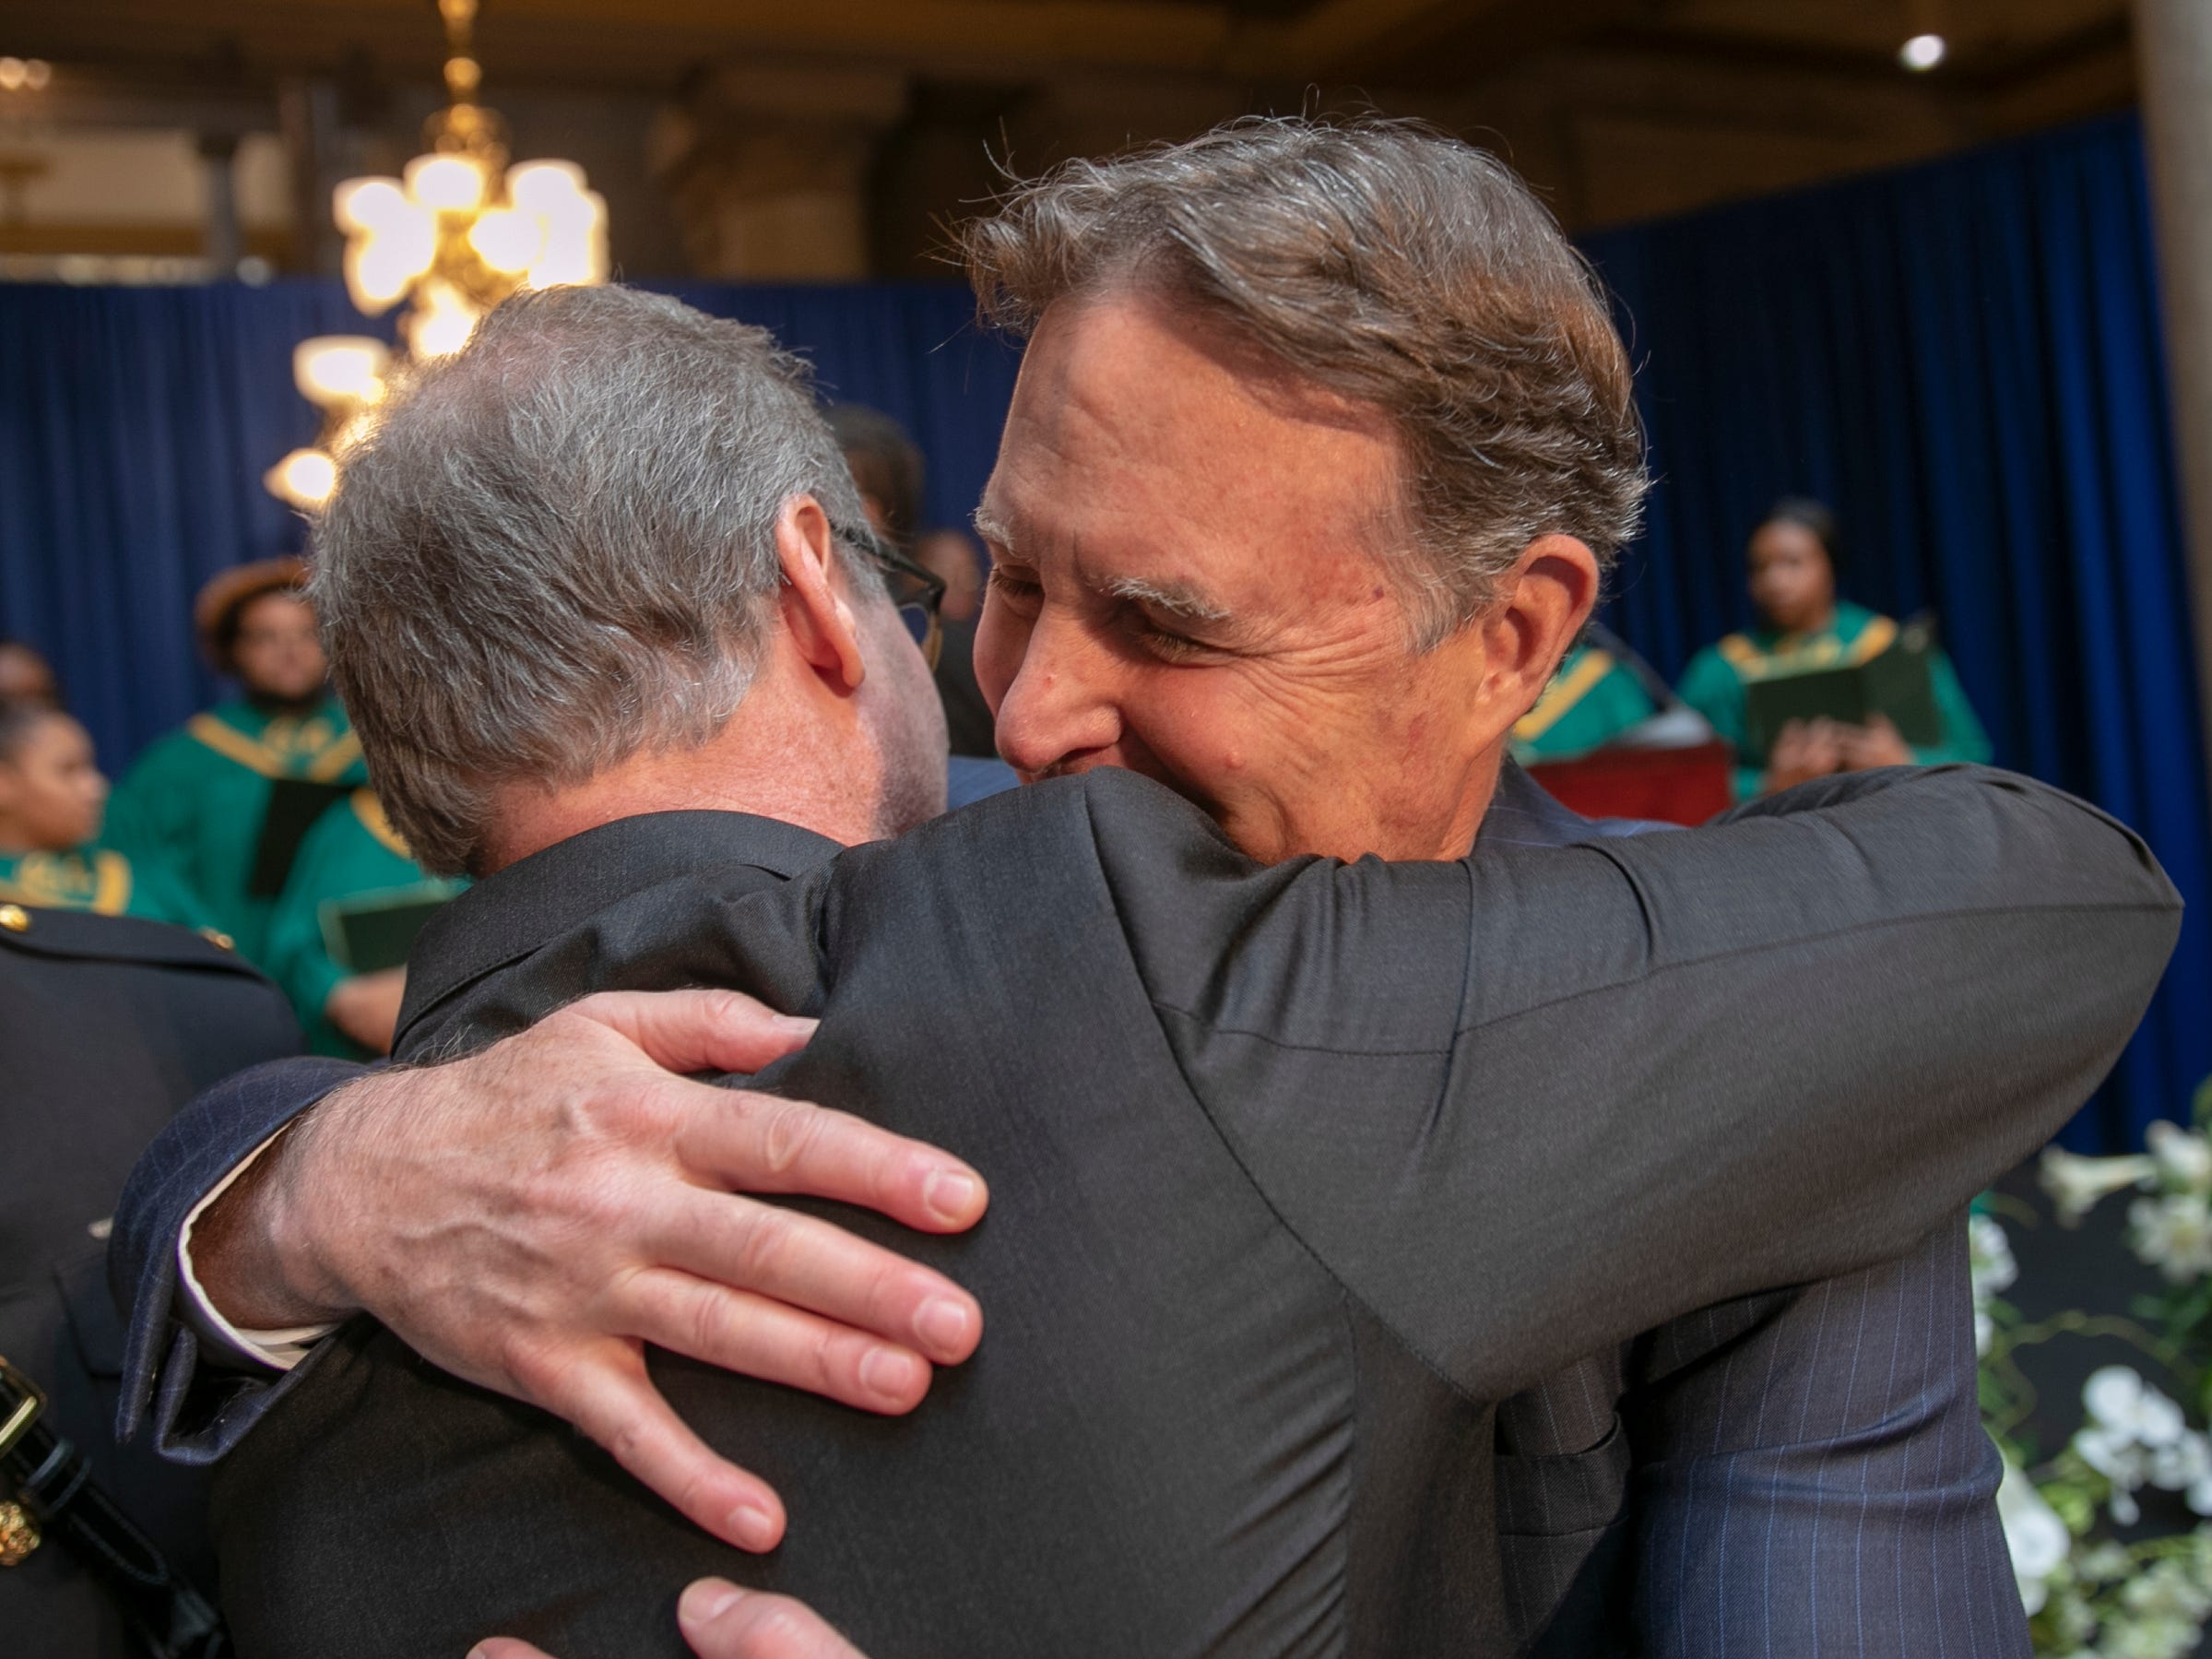 Evan Bayh (right), gets a hug before a service for his father Birch Bayh, who died on March 14, and was a three-term U.S. Senator, Indiana Statehouse, Indianapolis, Wednesday, May 1, 2019.